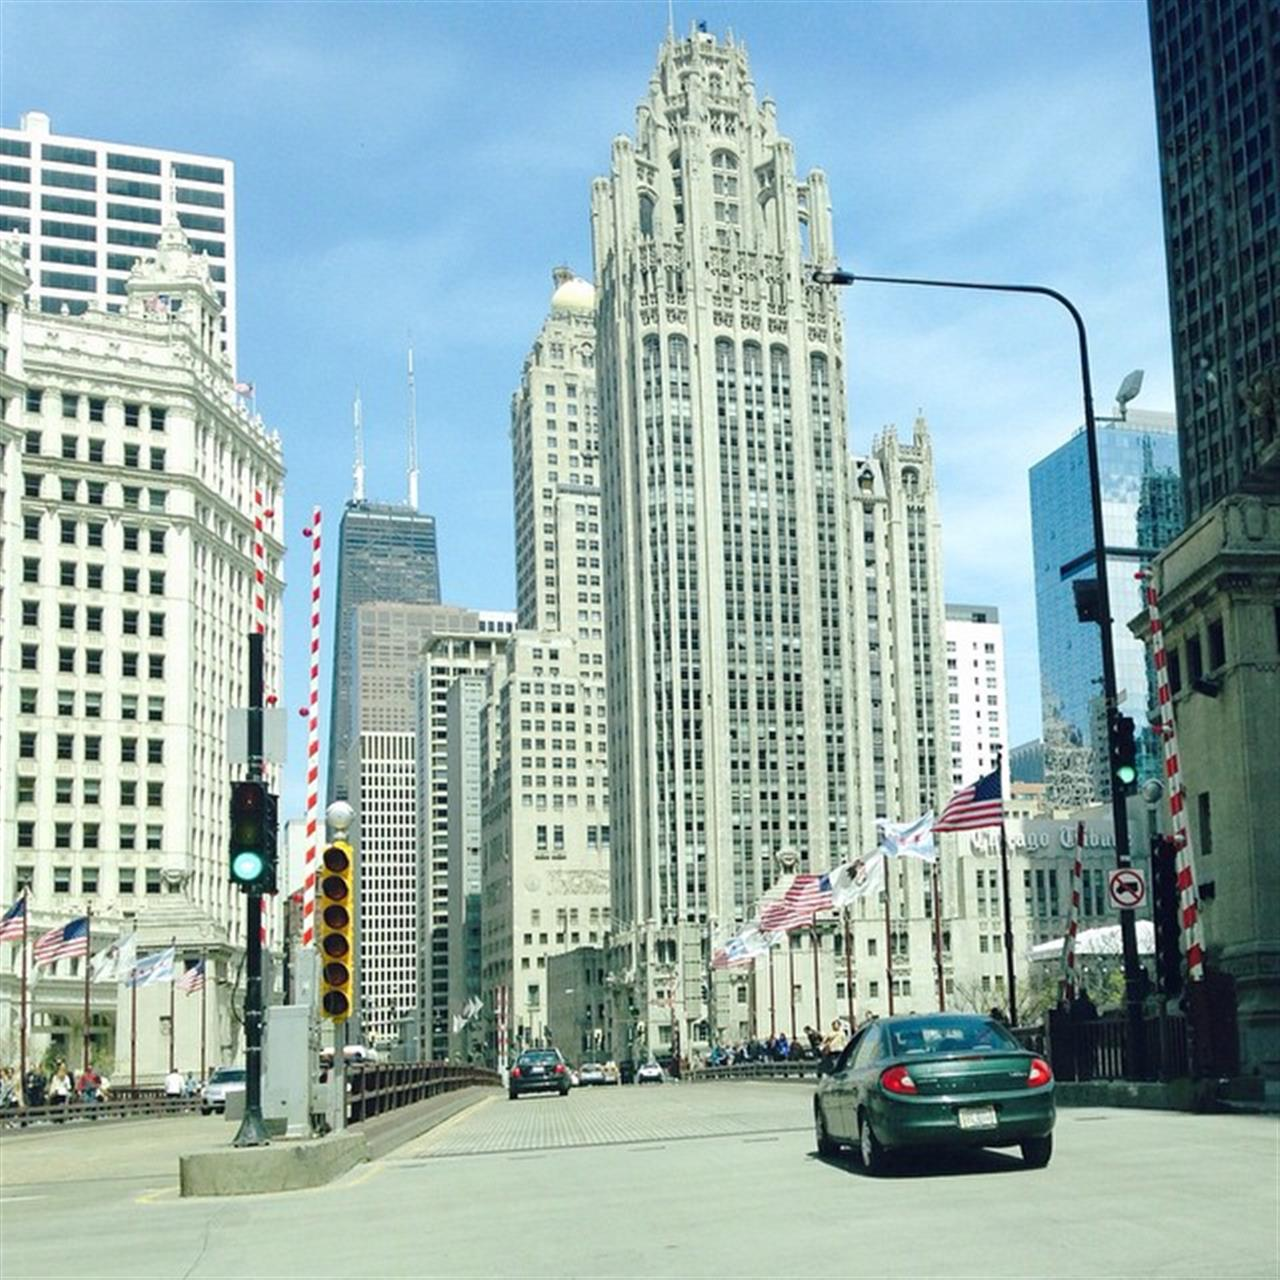 Michigan Ave at the Chicago River  #tribunetower #chicago #leadingrelocal #michiganave